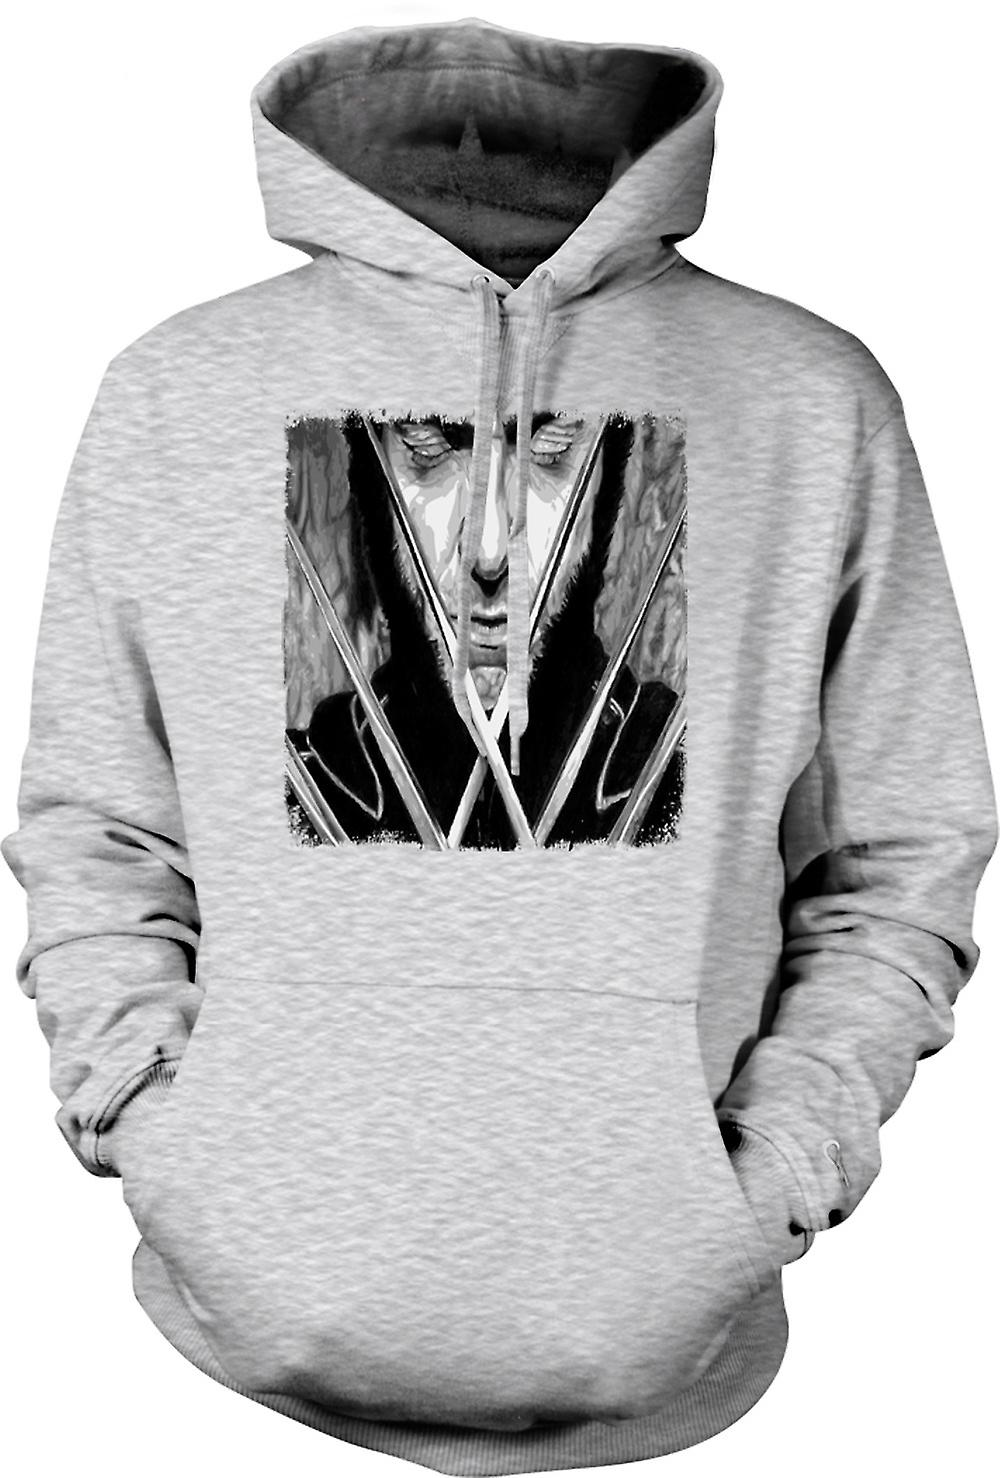 Mens Hoodie - X Men Wolverine - BW - Pop Art